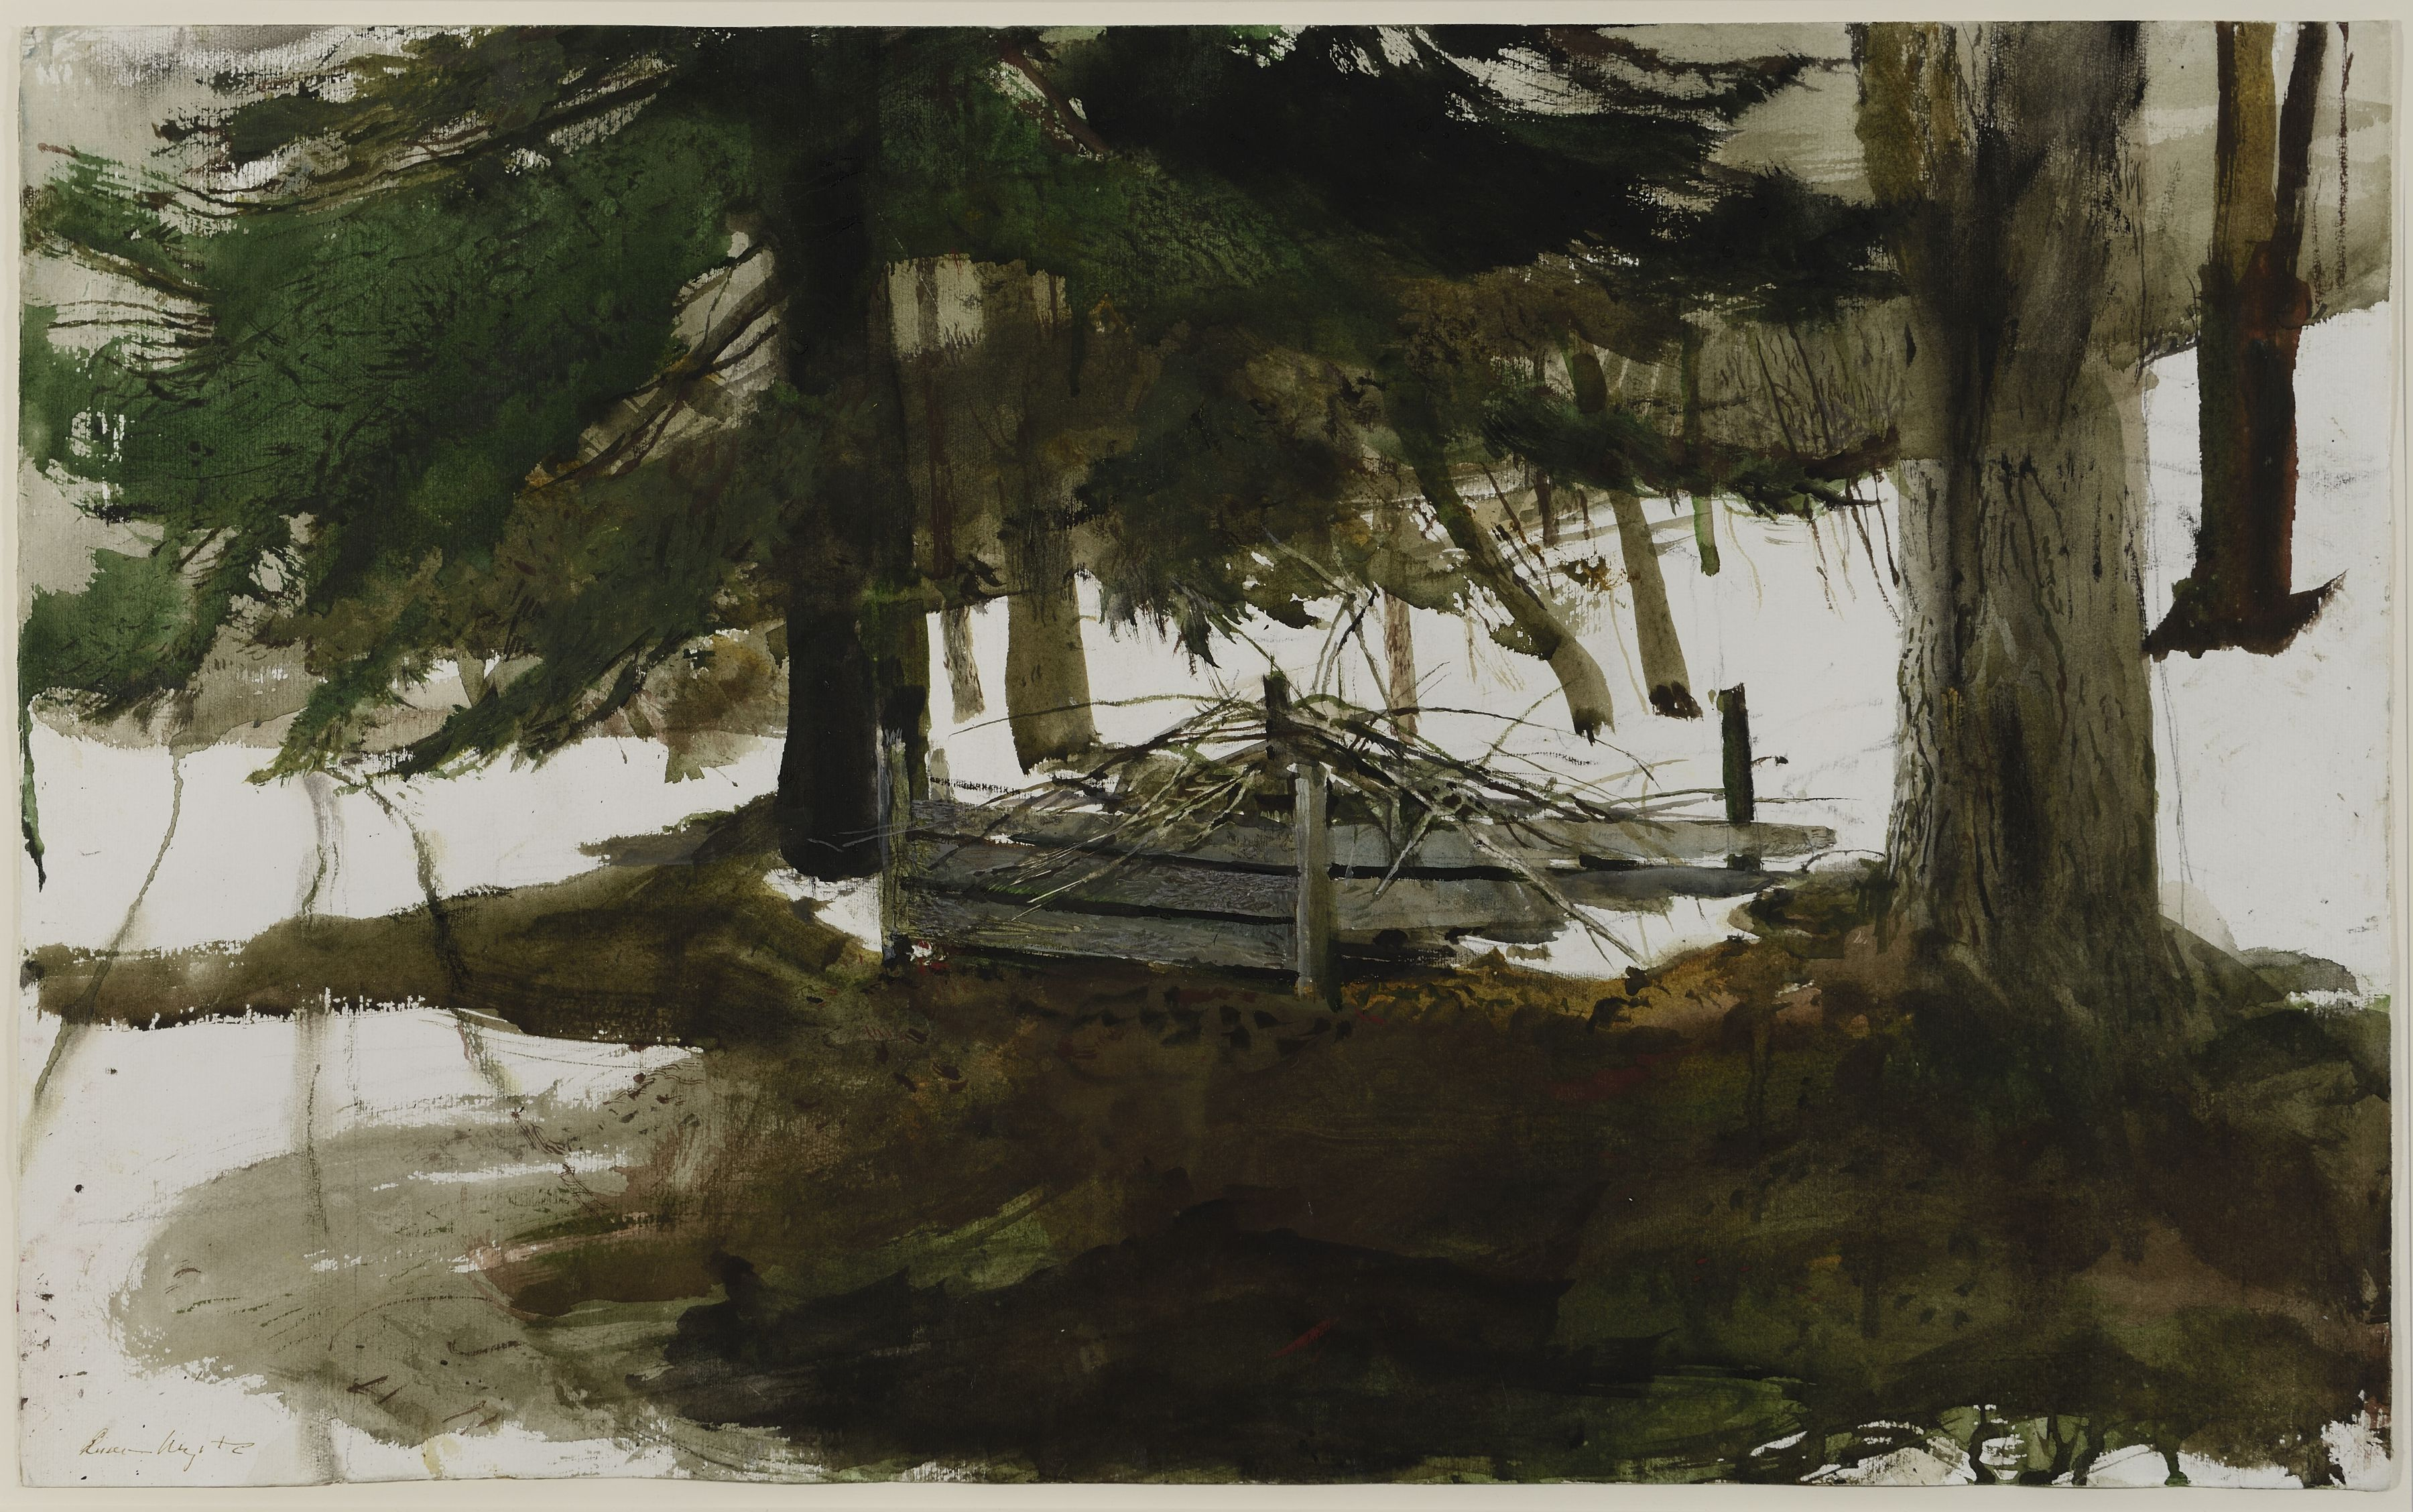 Andrew Wyeth, Pickup Sticks, 1994, watercolor and gouache over pencil on paper, 16 3/4 x 27 1/4 inches